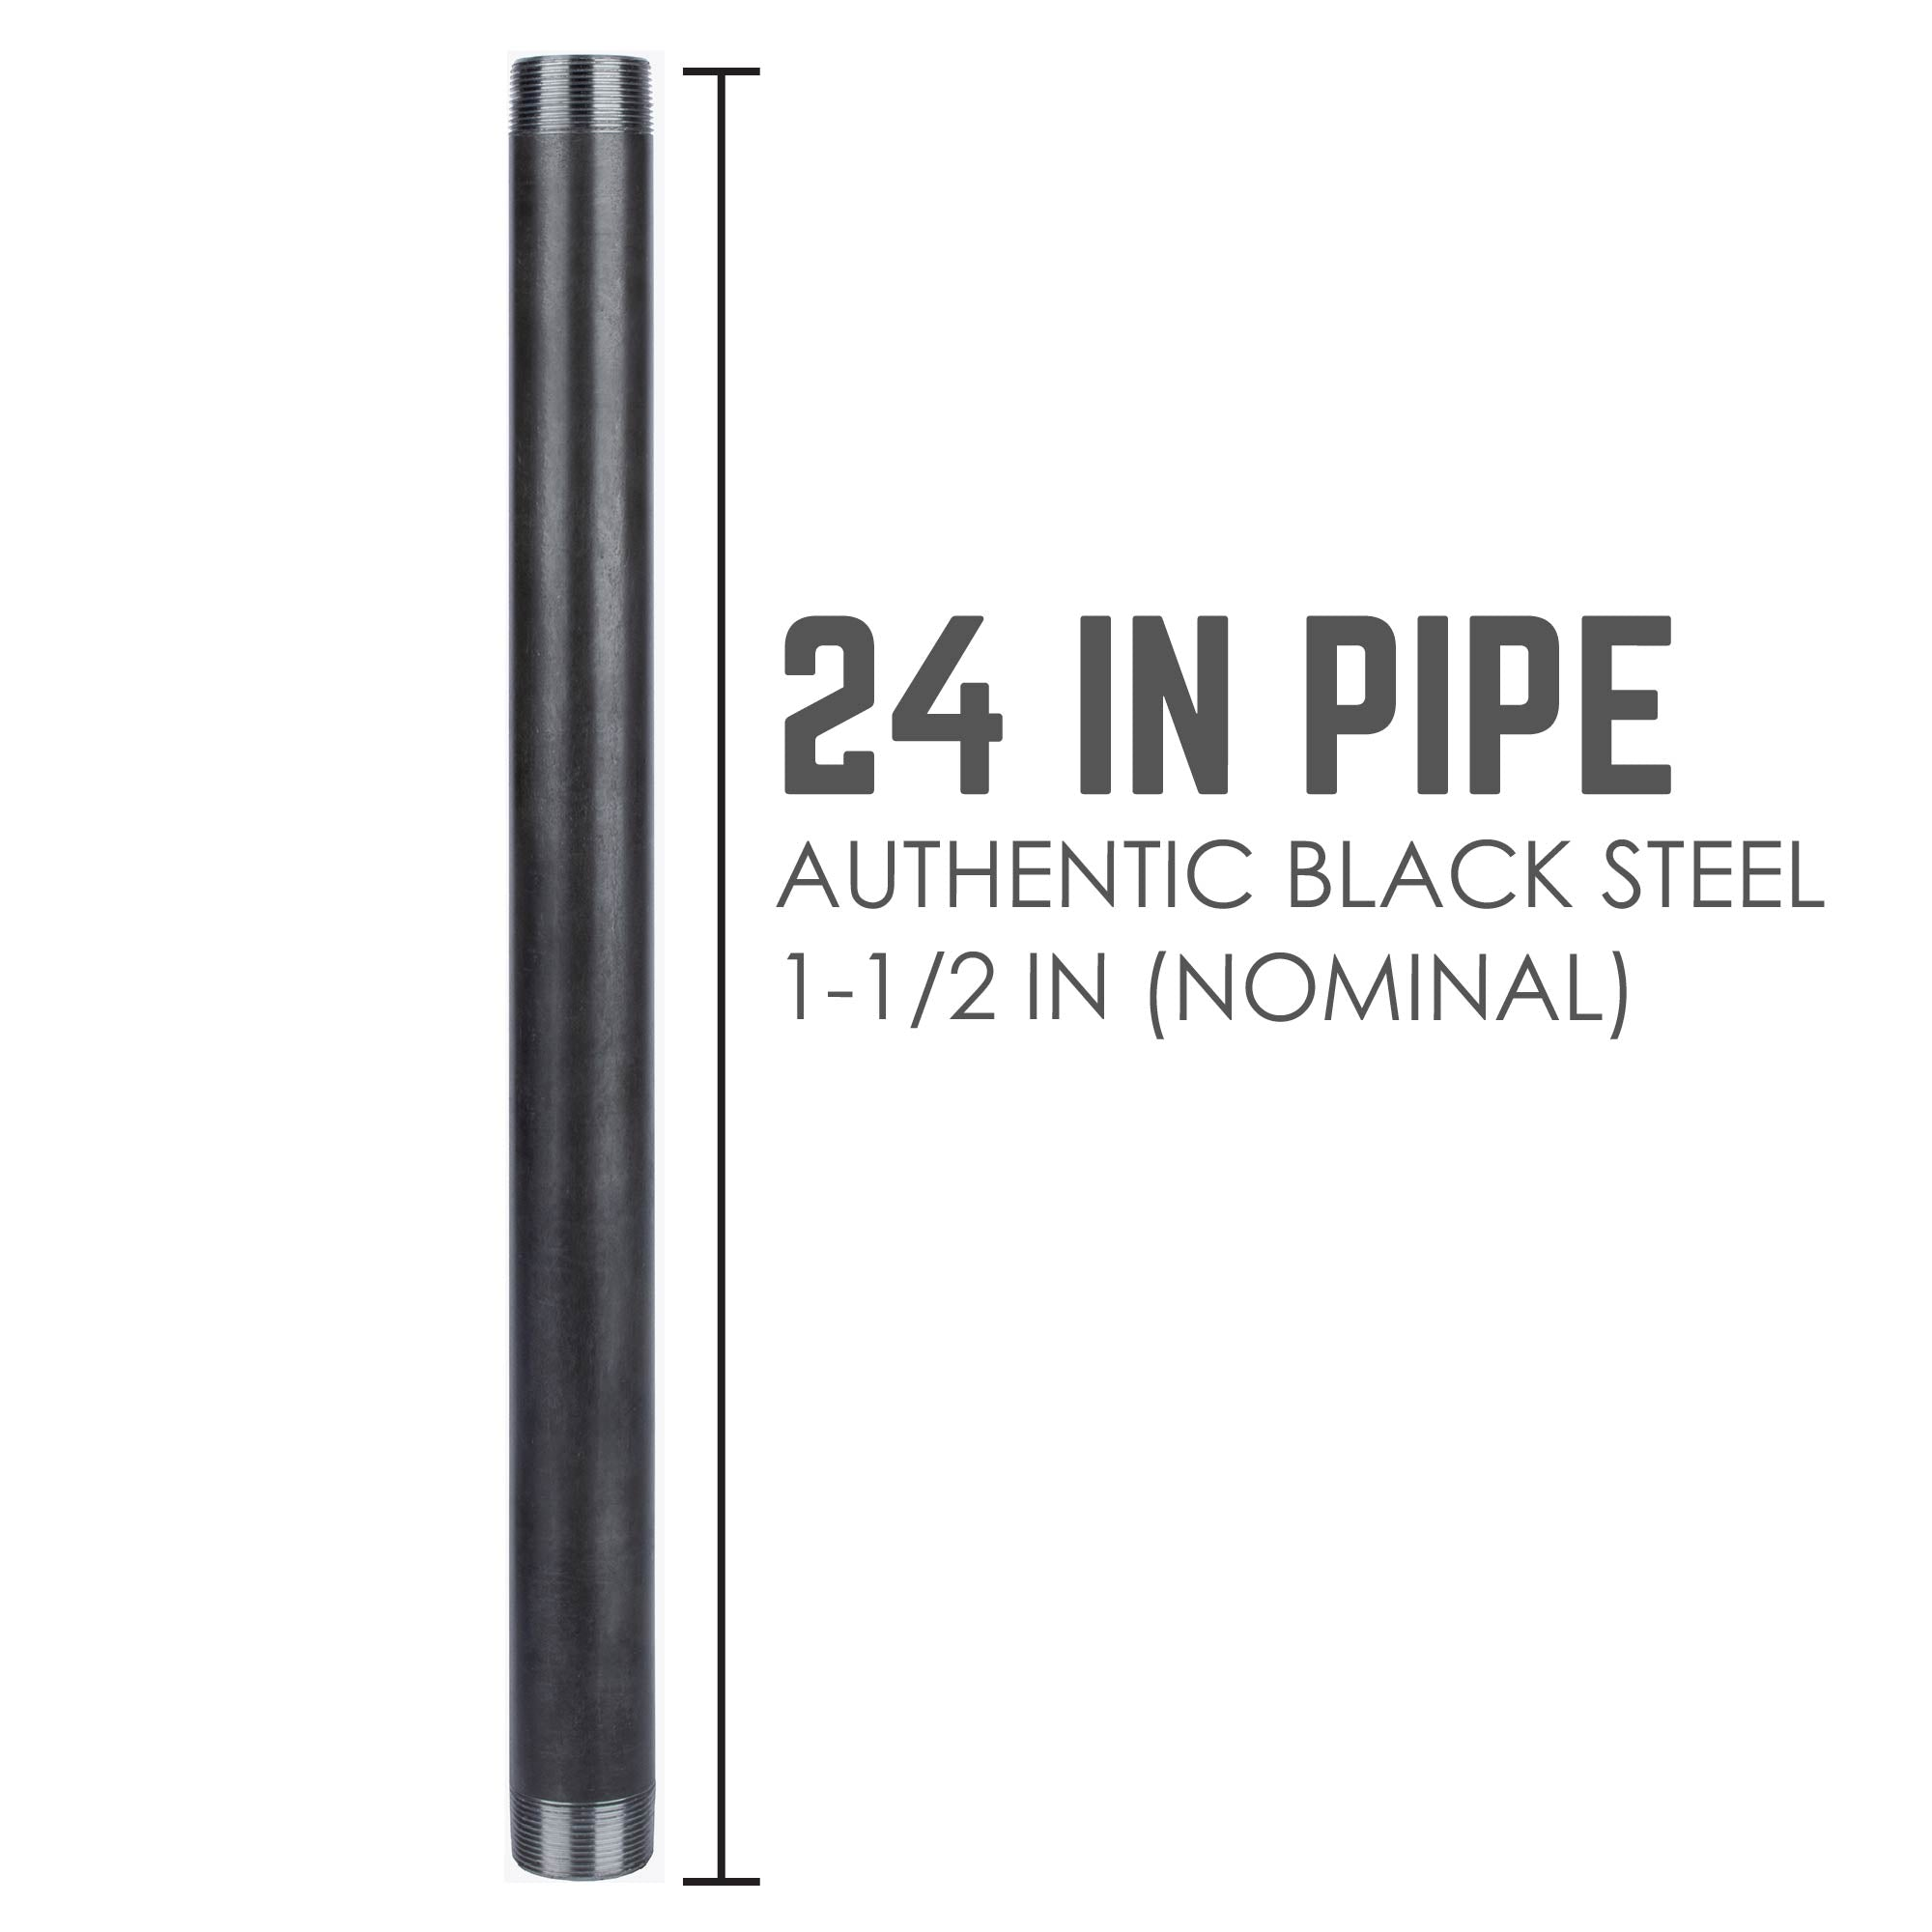 1 1/2 In X 24 In Black Pipe - Pipe Decor